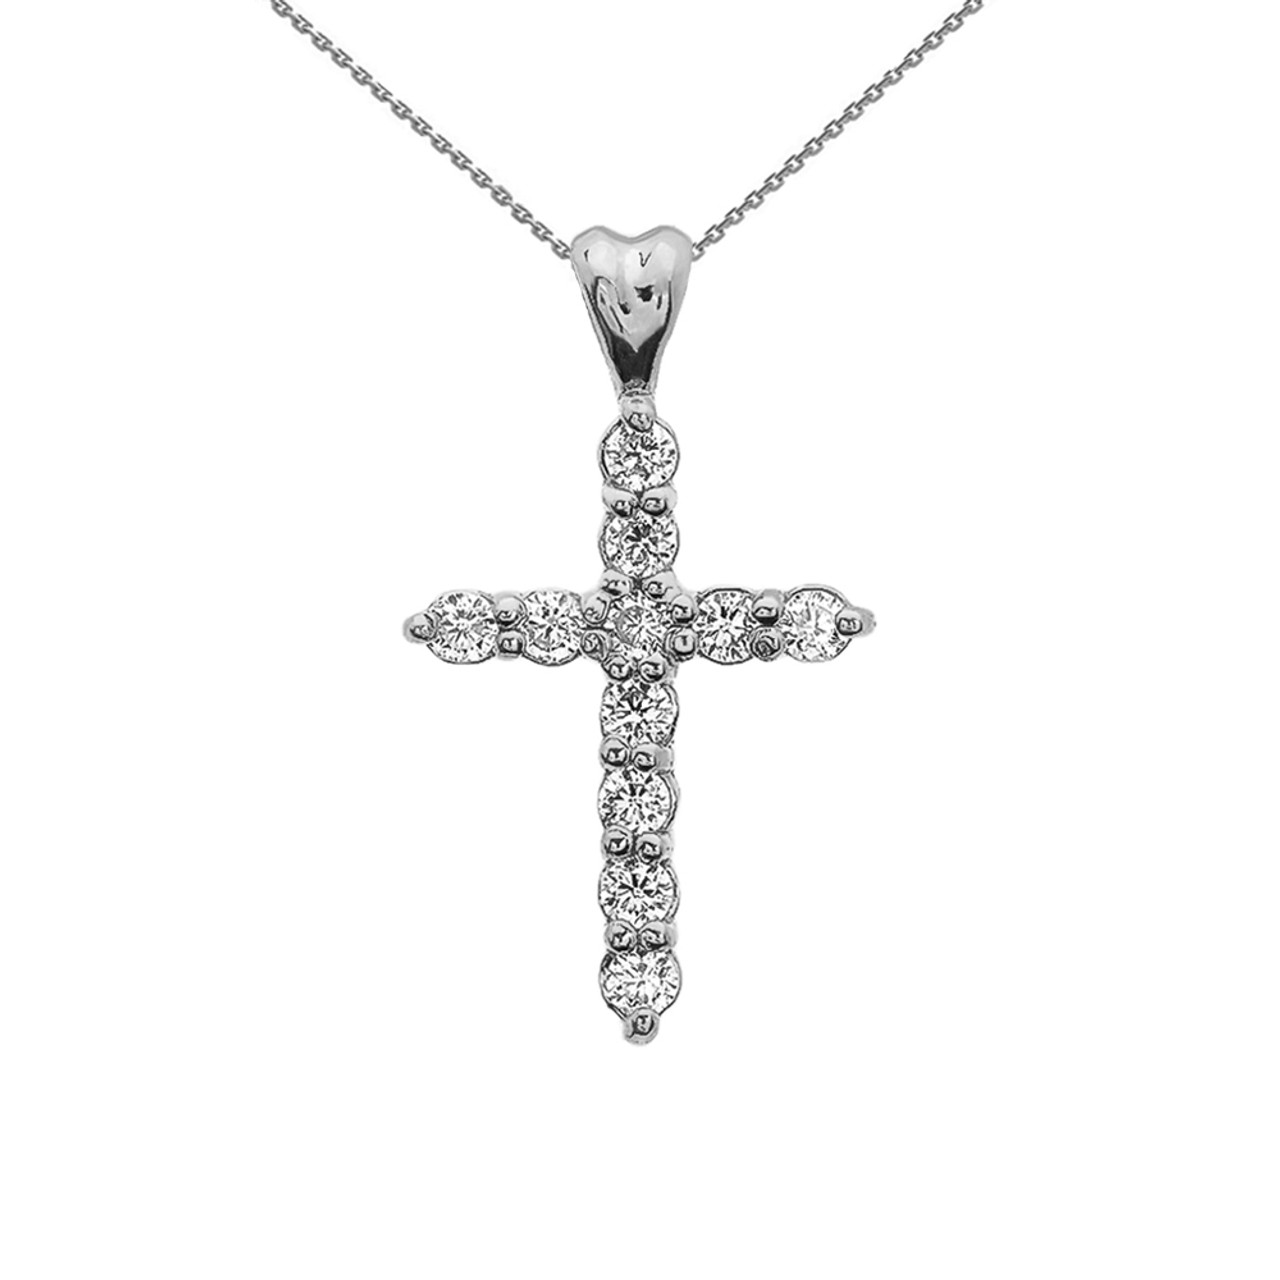 White Gold Elegant Cubic Zirconia (CZ) Cross Pendant Necklace 45e3beb052ba